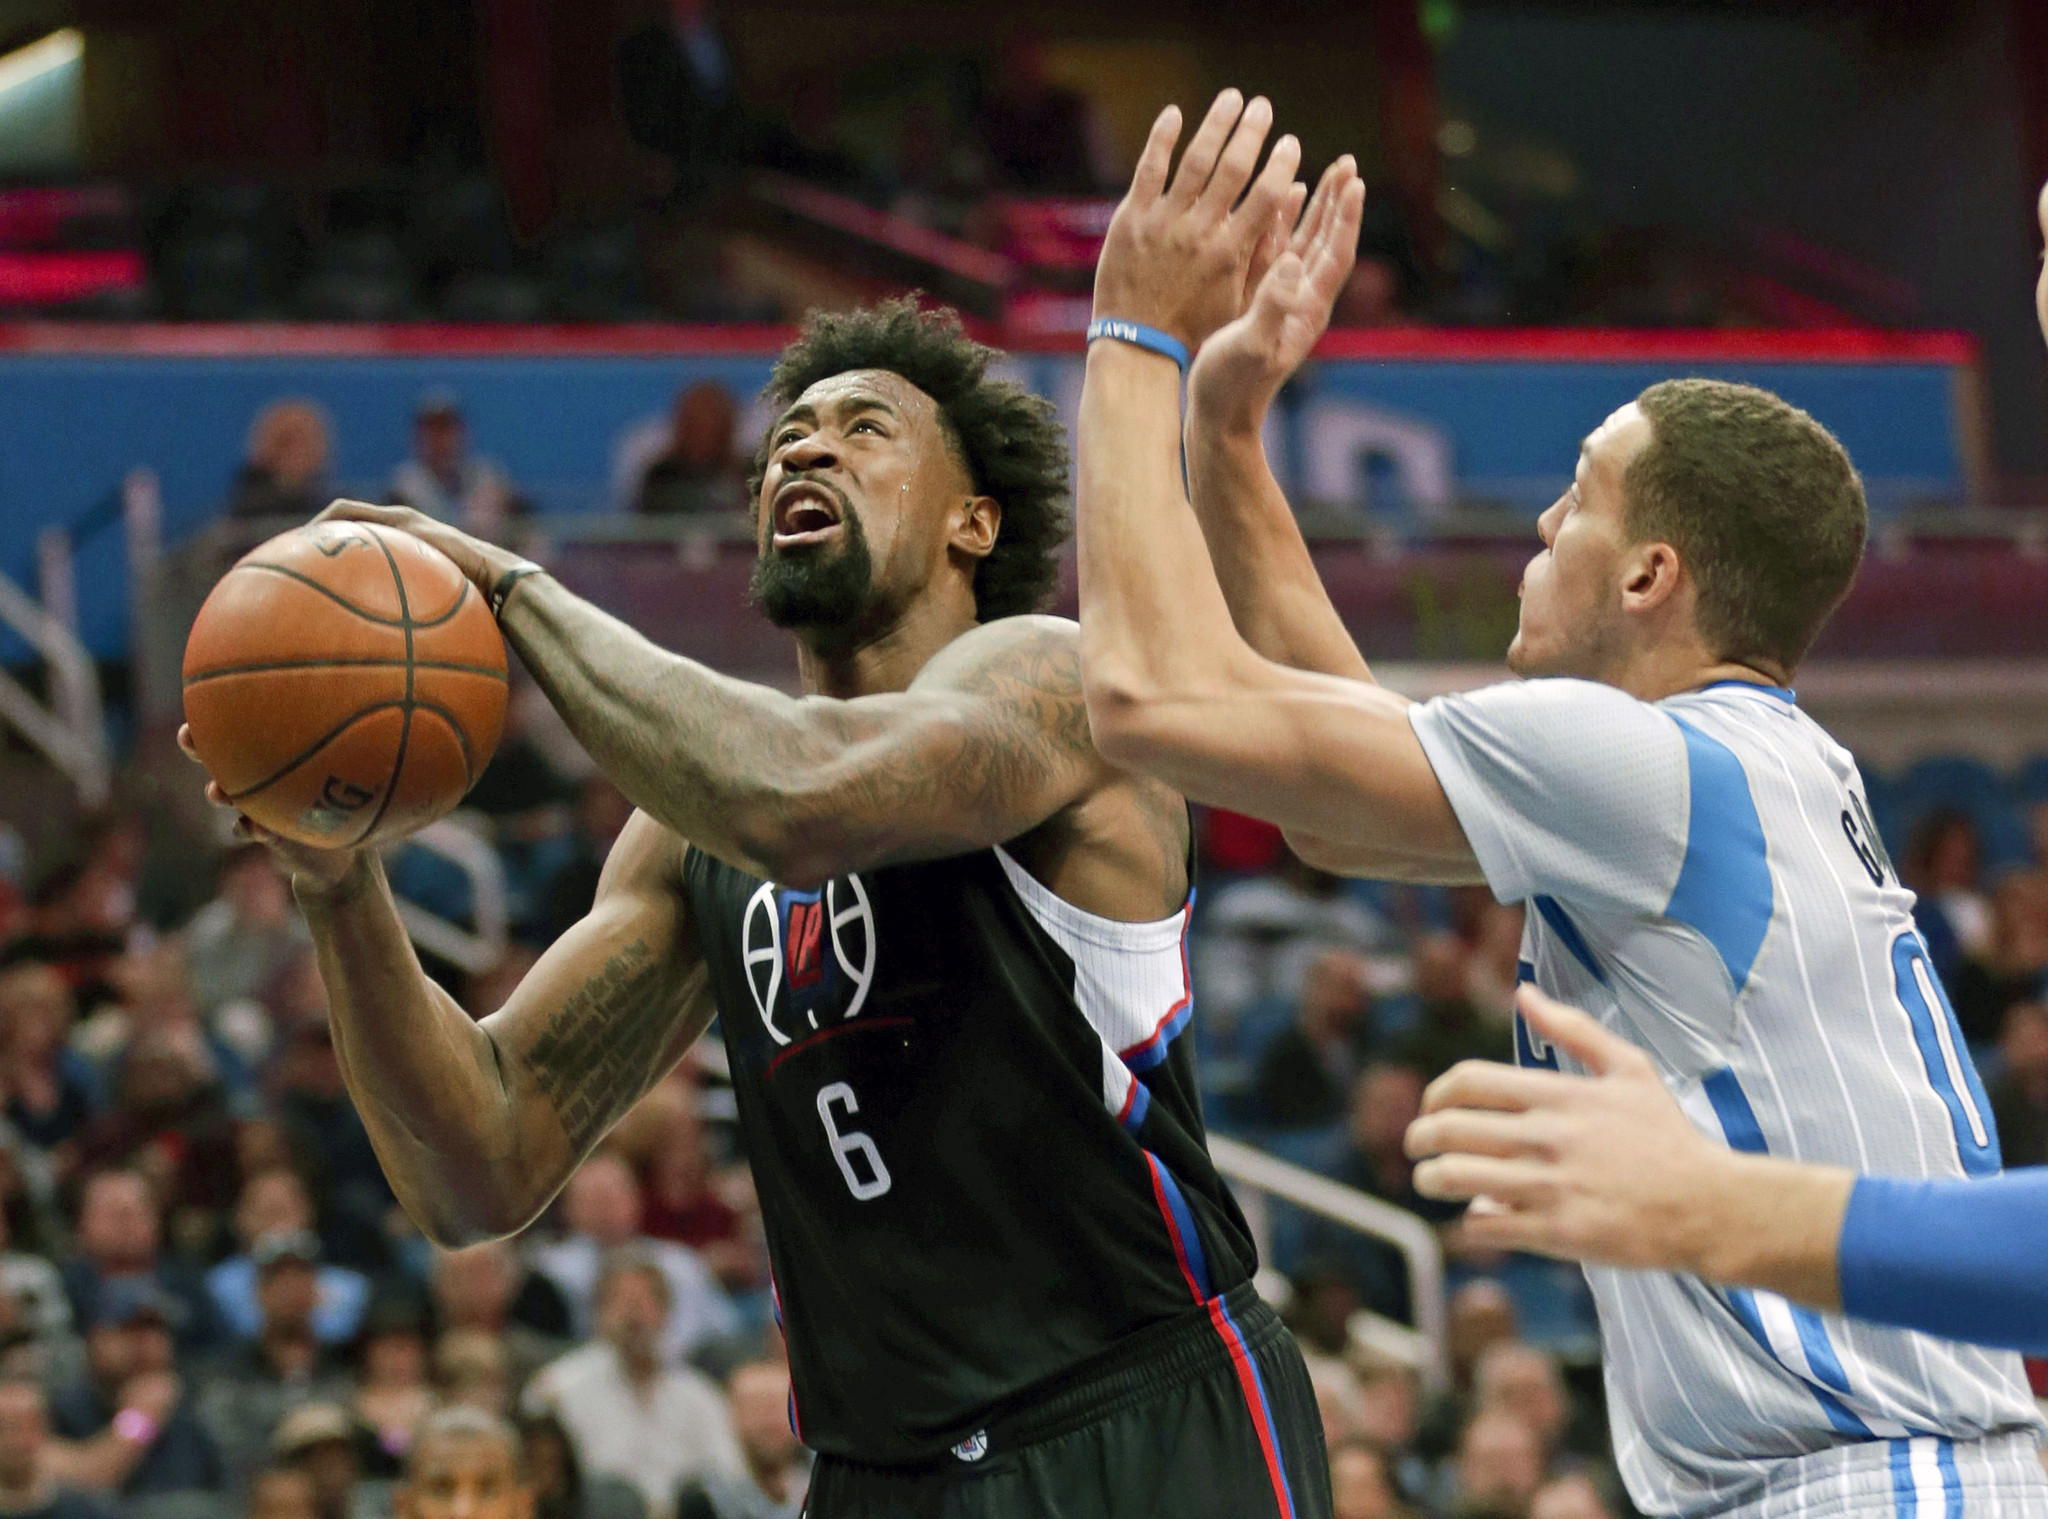 La-sp-cn-clippers-magic-5-takeaways-20160206